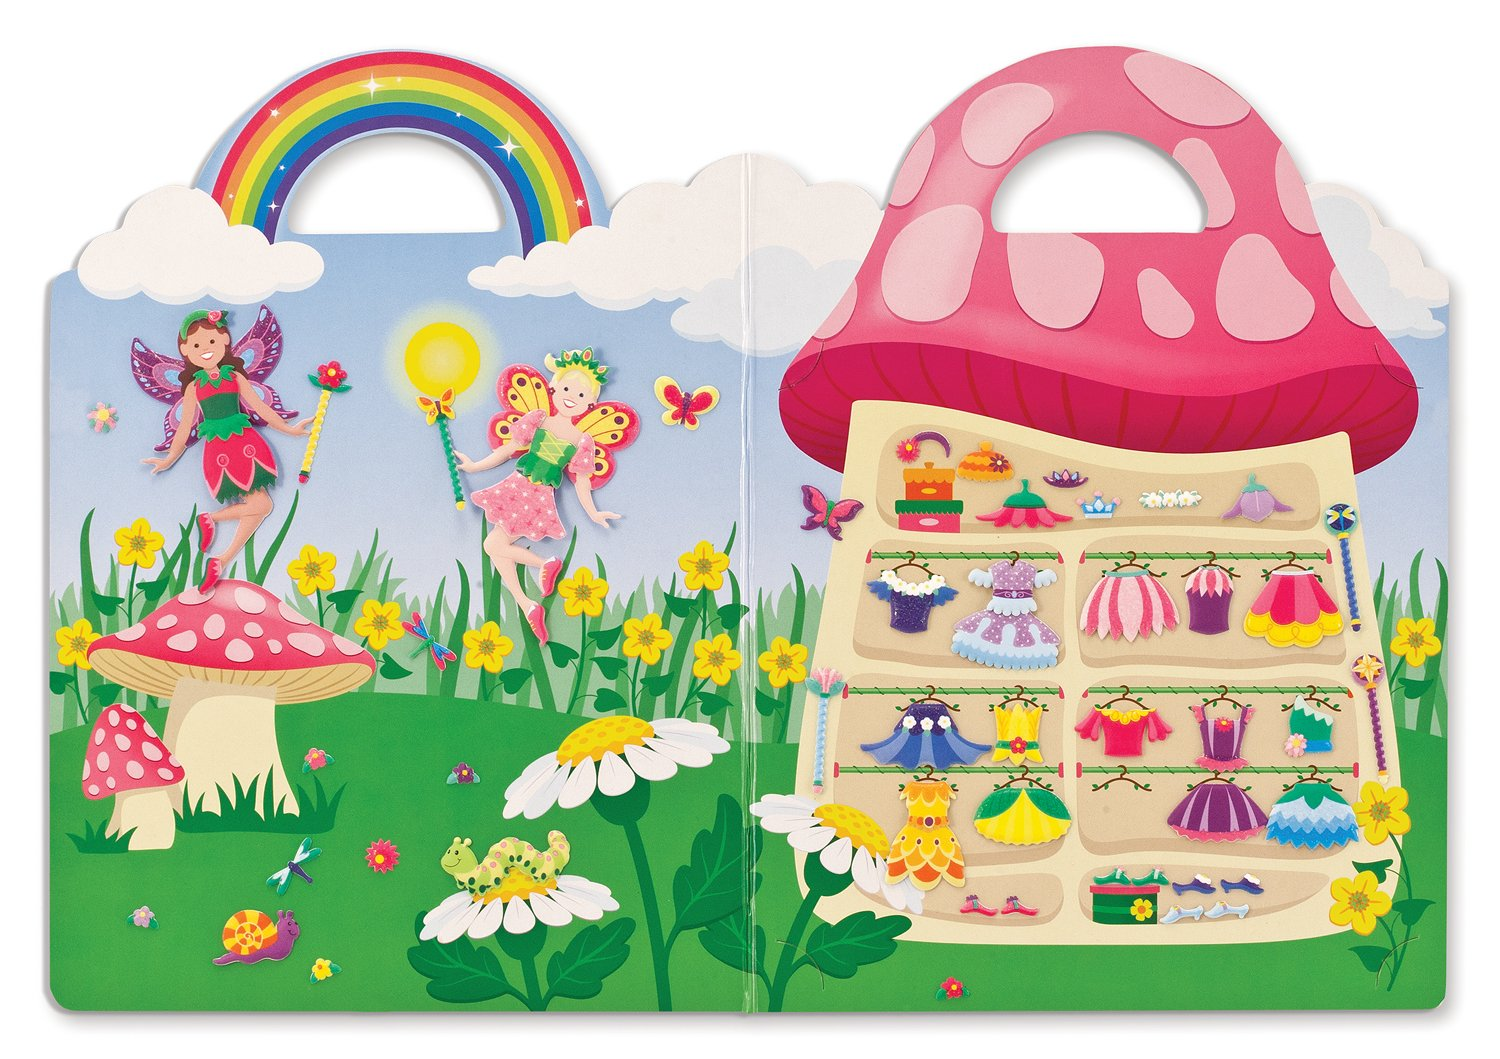 Fairy Reusable Activity Book,/75 Stickers, Great for Travel Melissa /& Doug Puffy Sticker Play Set